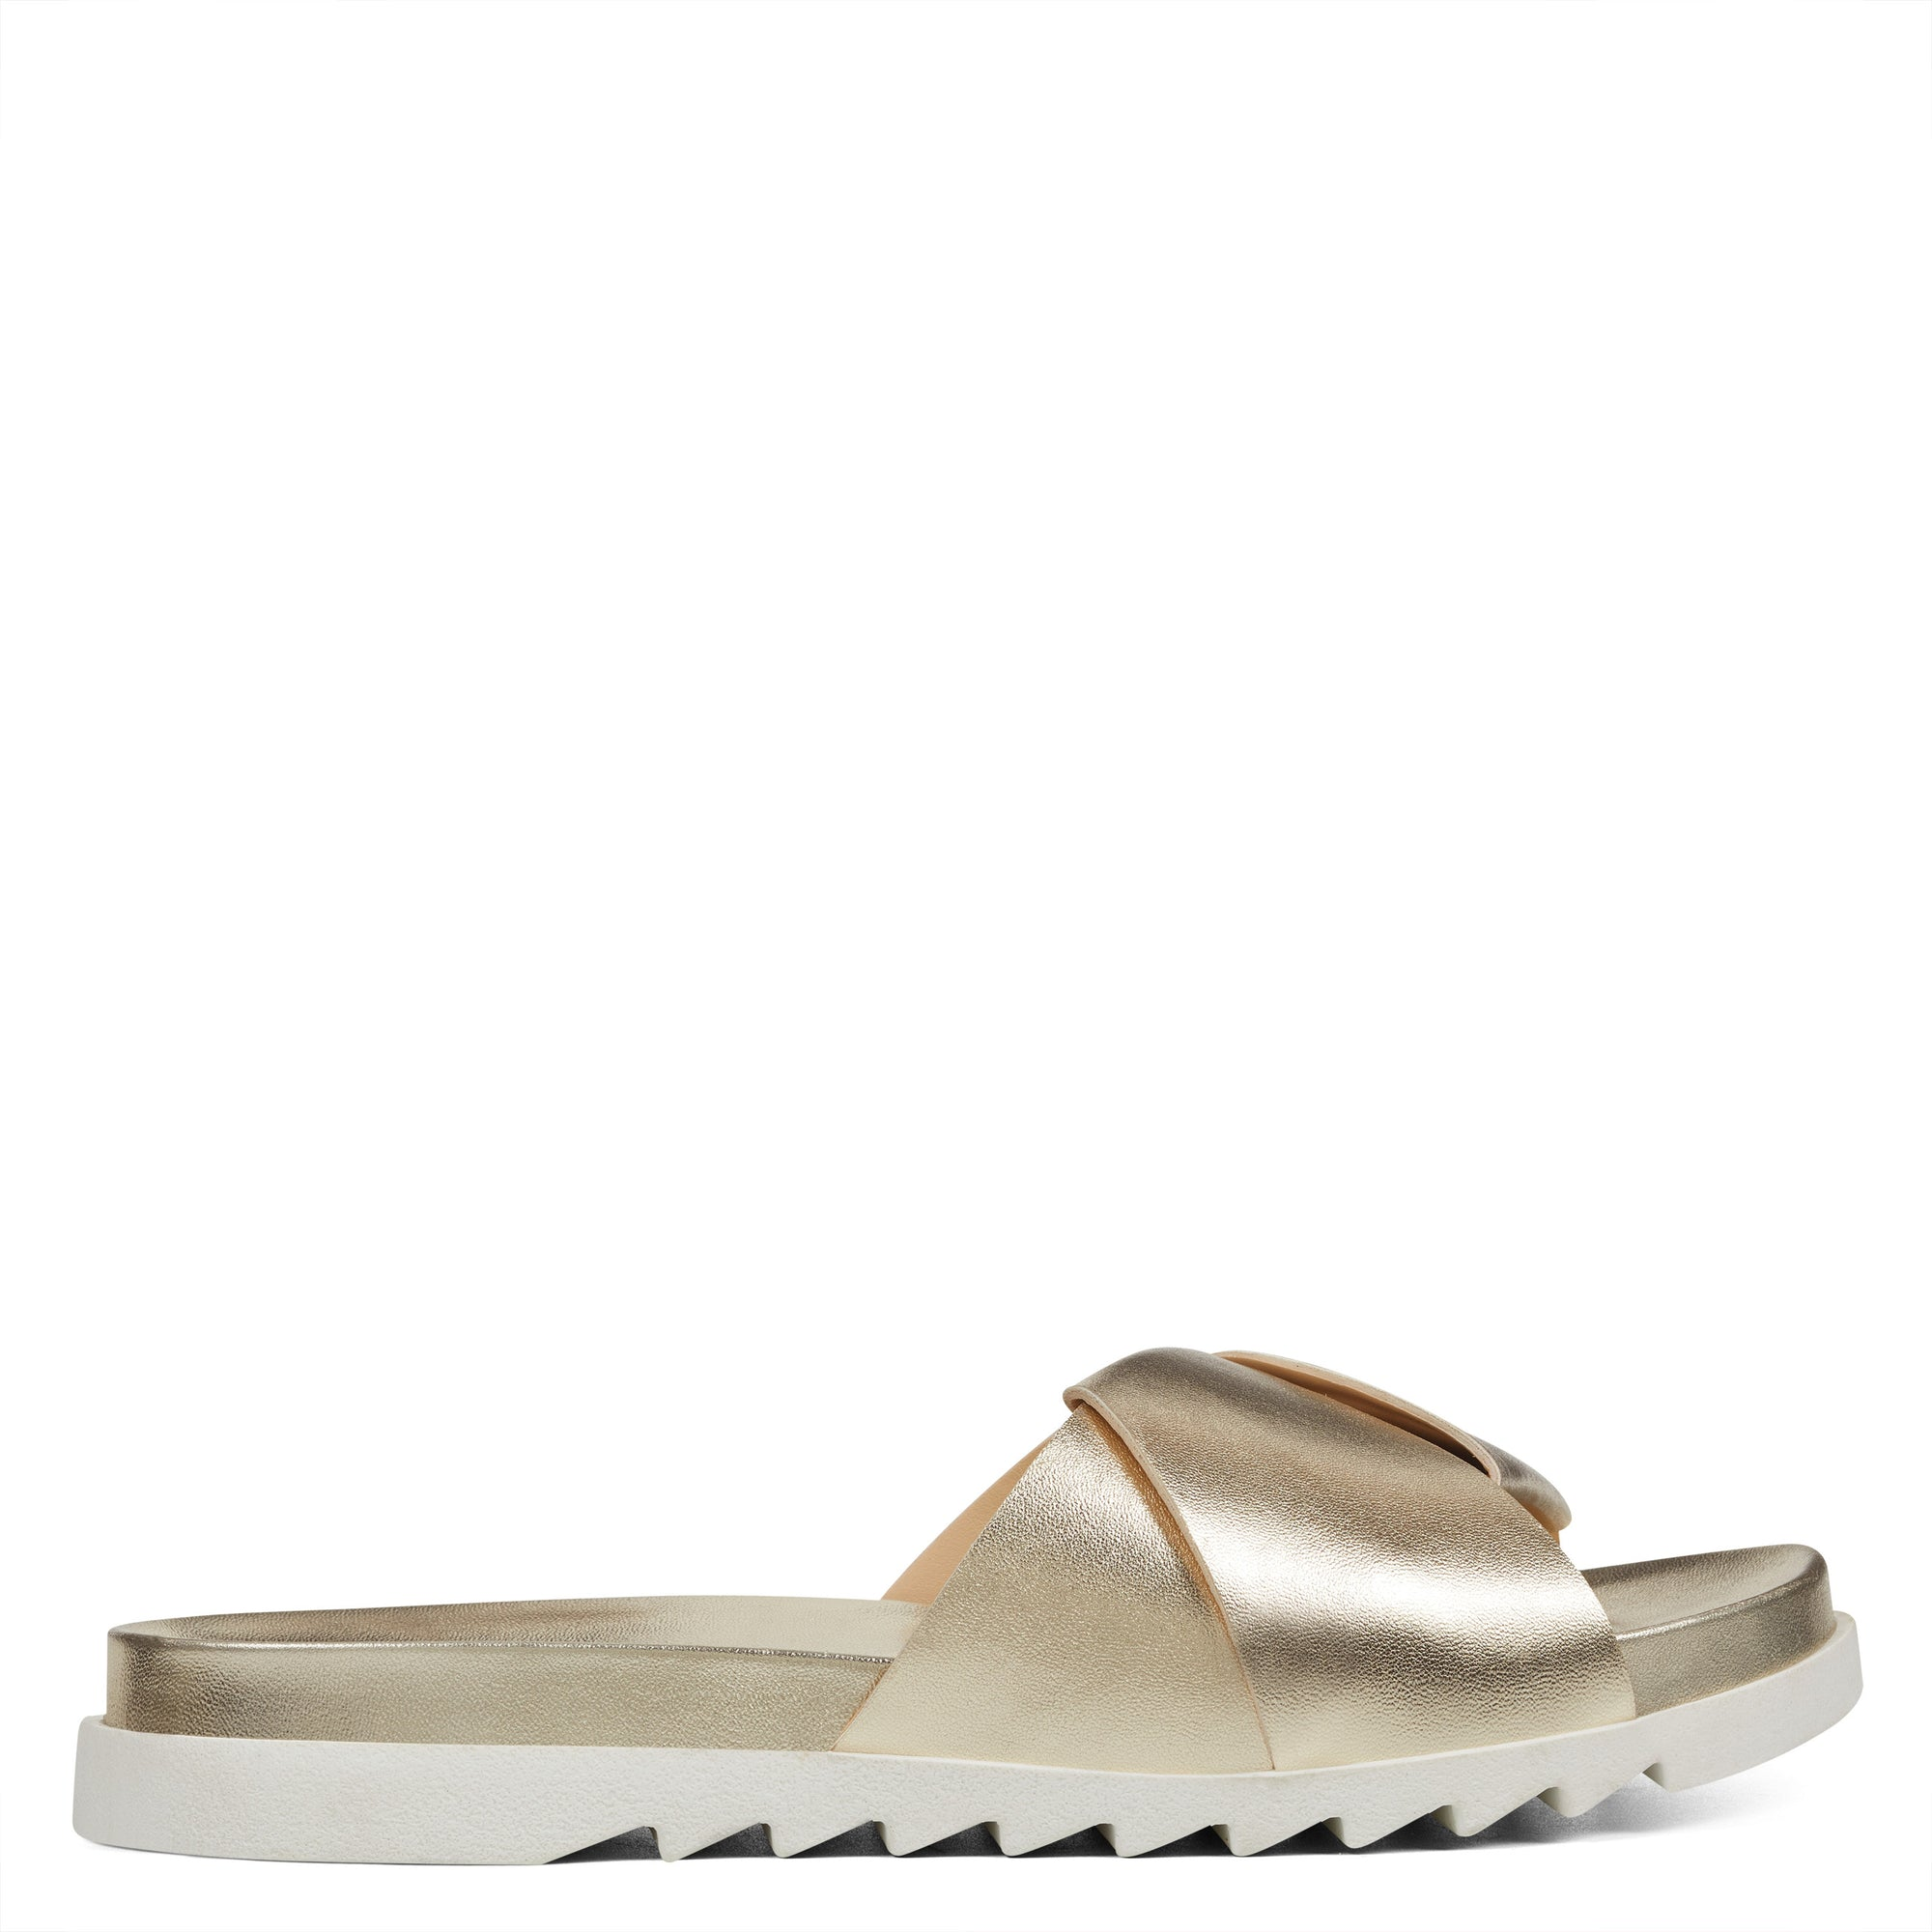 Furaish Slide Sandals